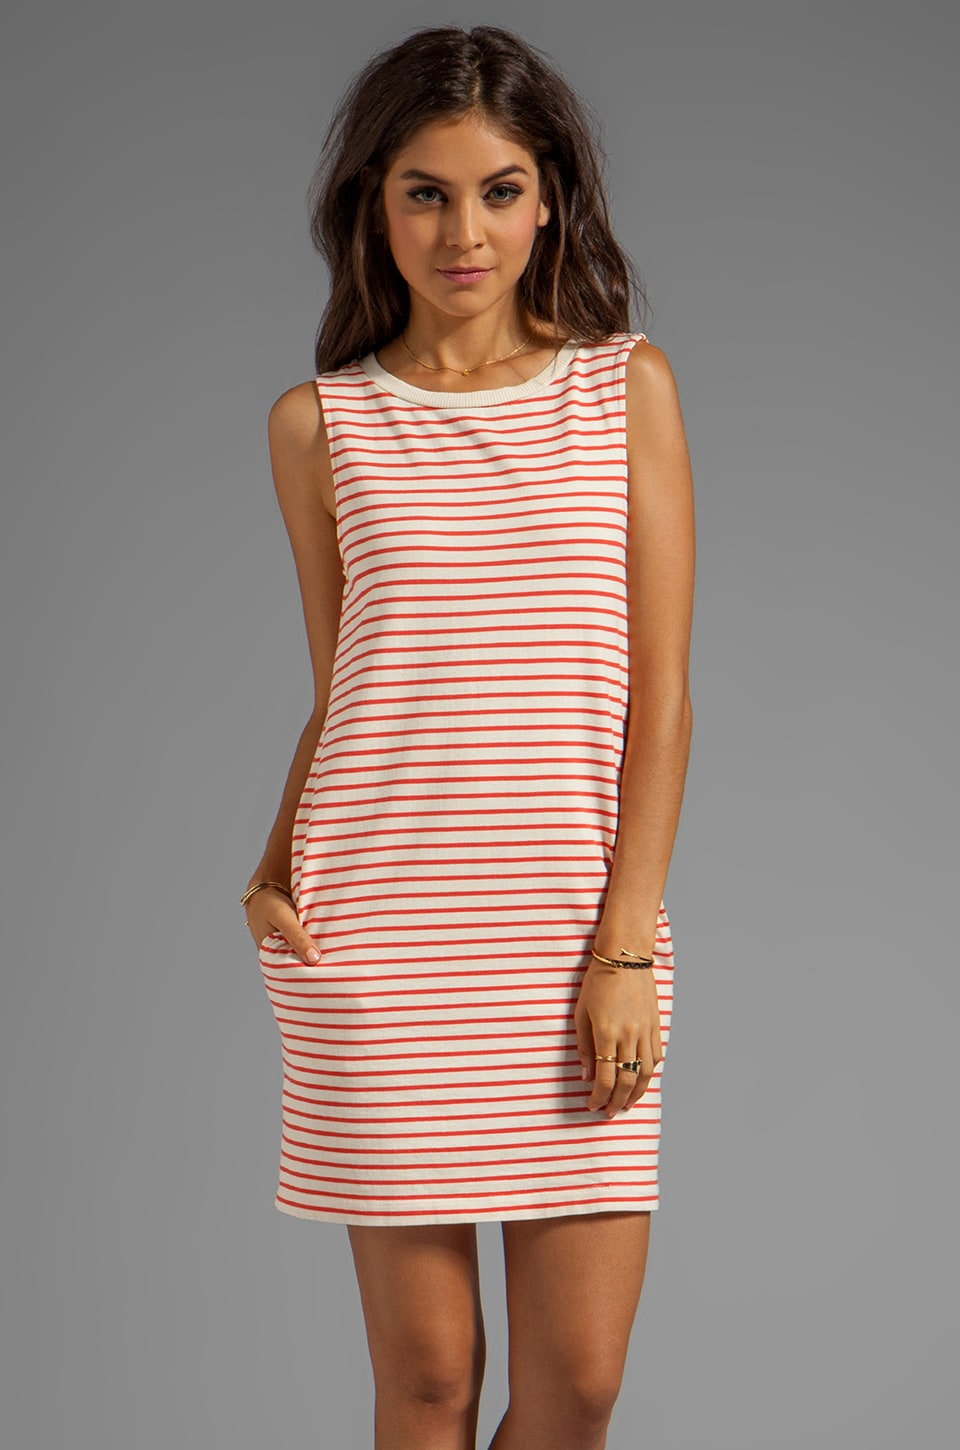 Soft Joie Leiston Stripe Dress in Porcelain Pureed Pumpkin